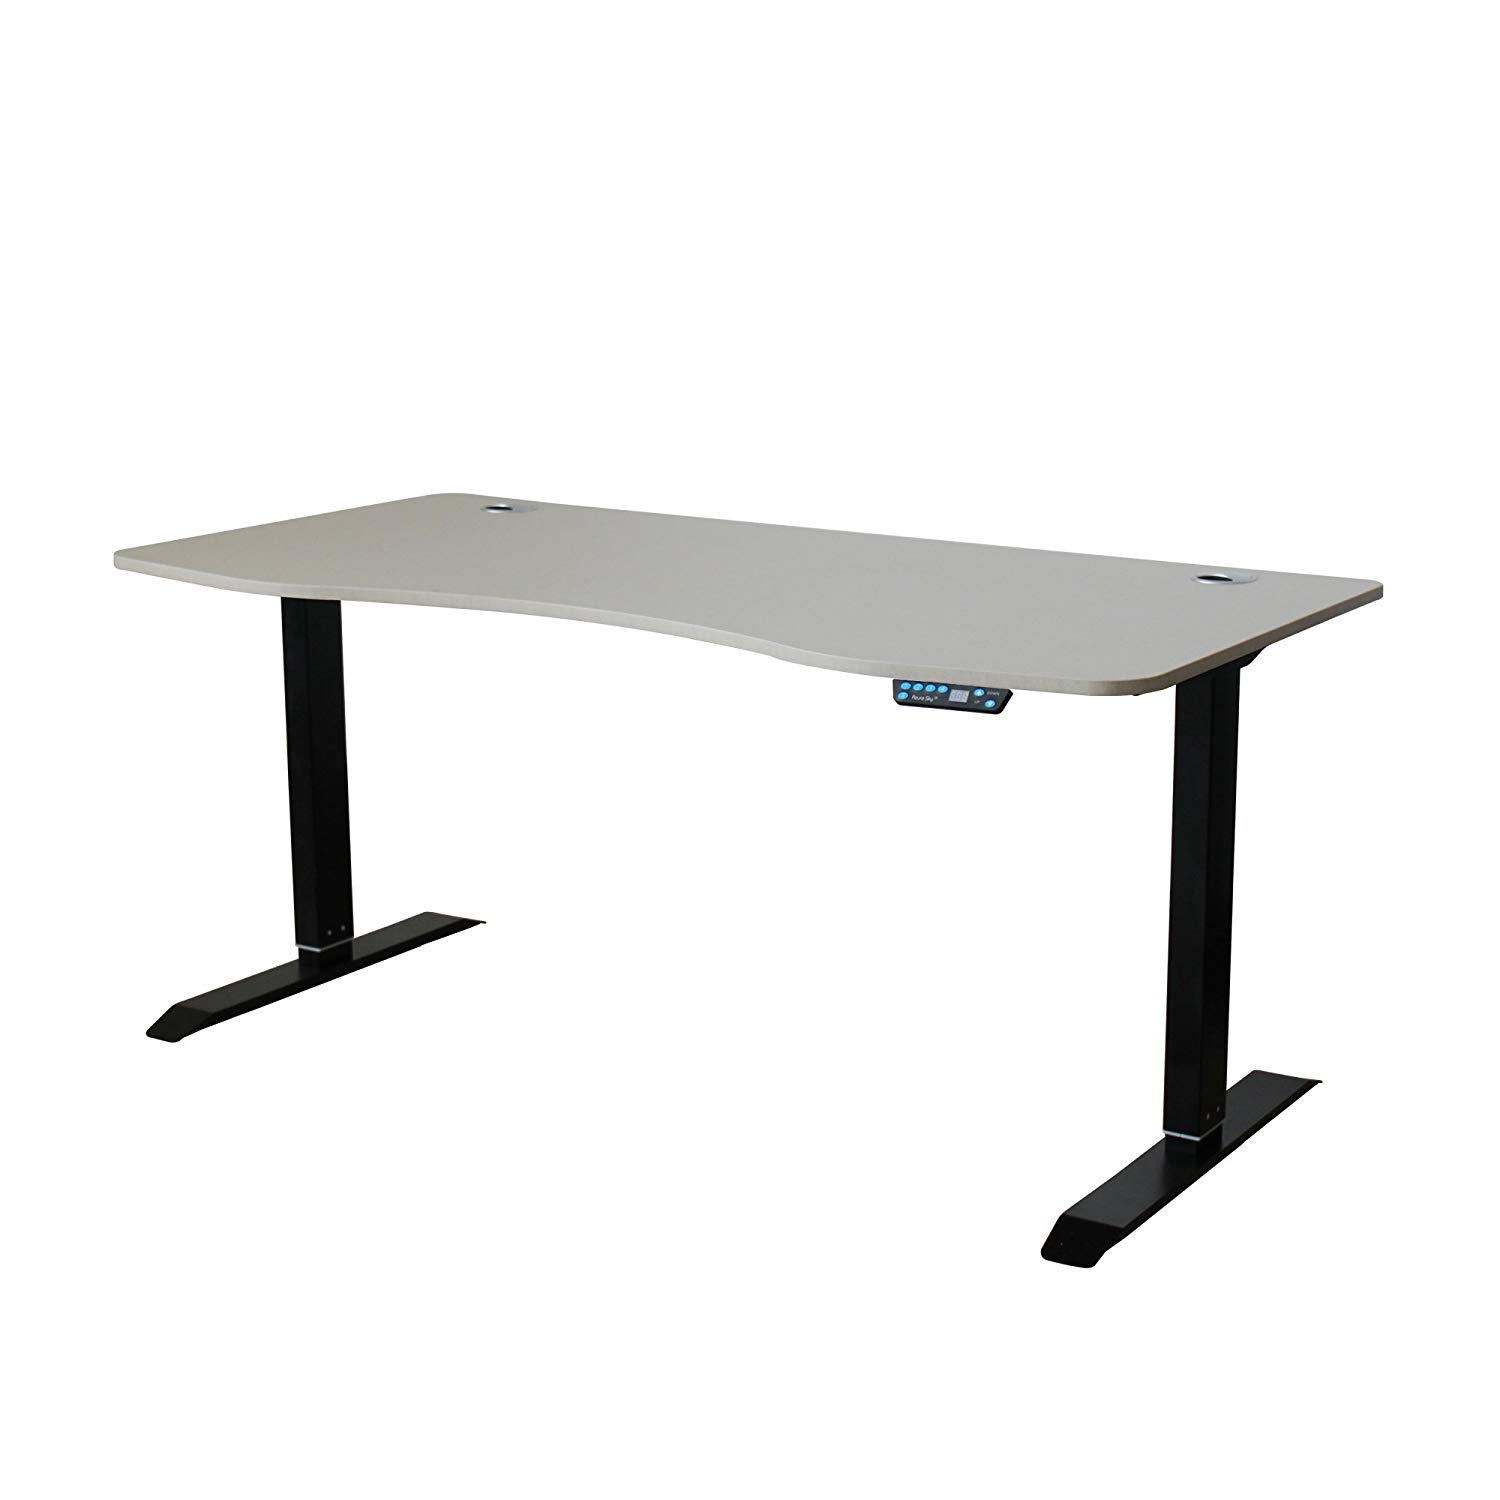 Azure Sky AB3-63 Ergonomic 63-in 3 Memory Buttons LED Electric Automatic Height Adjustable Sit to Stand Curved Work Office Desk with Black Legs